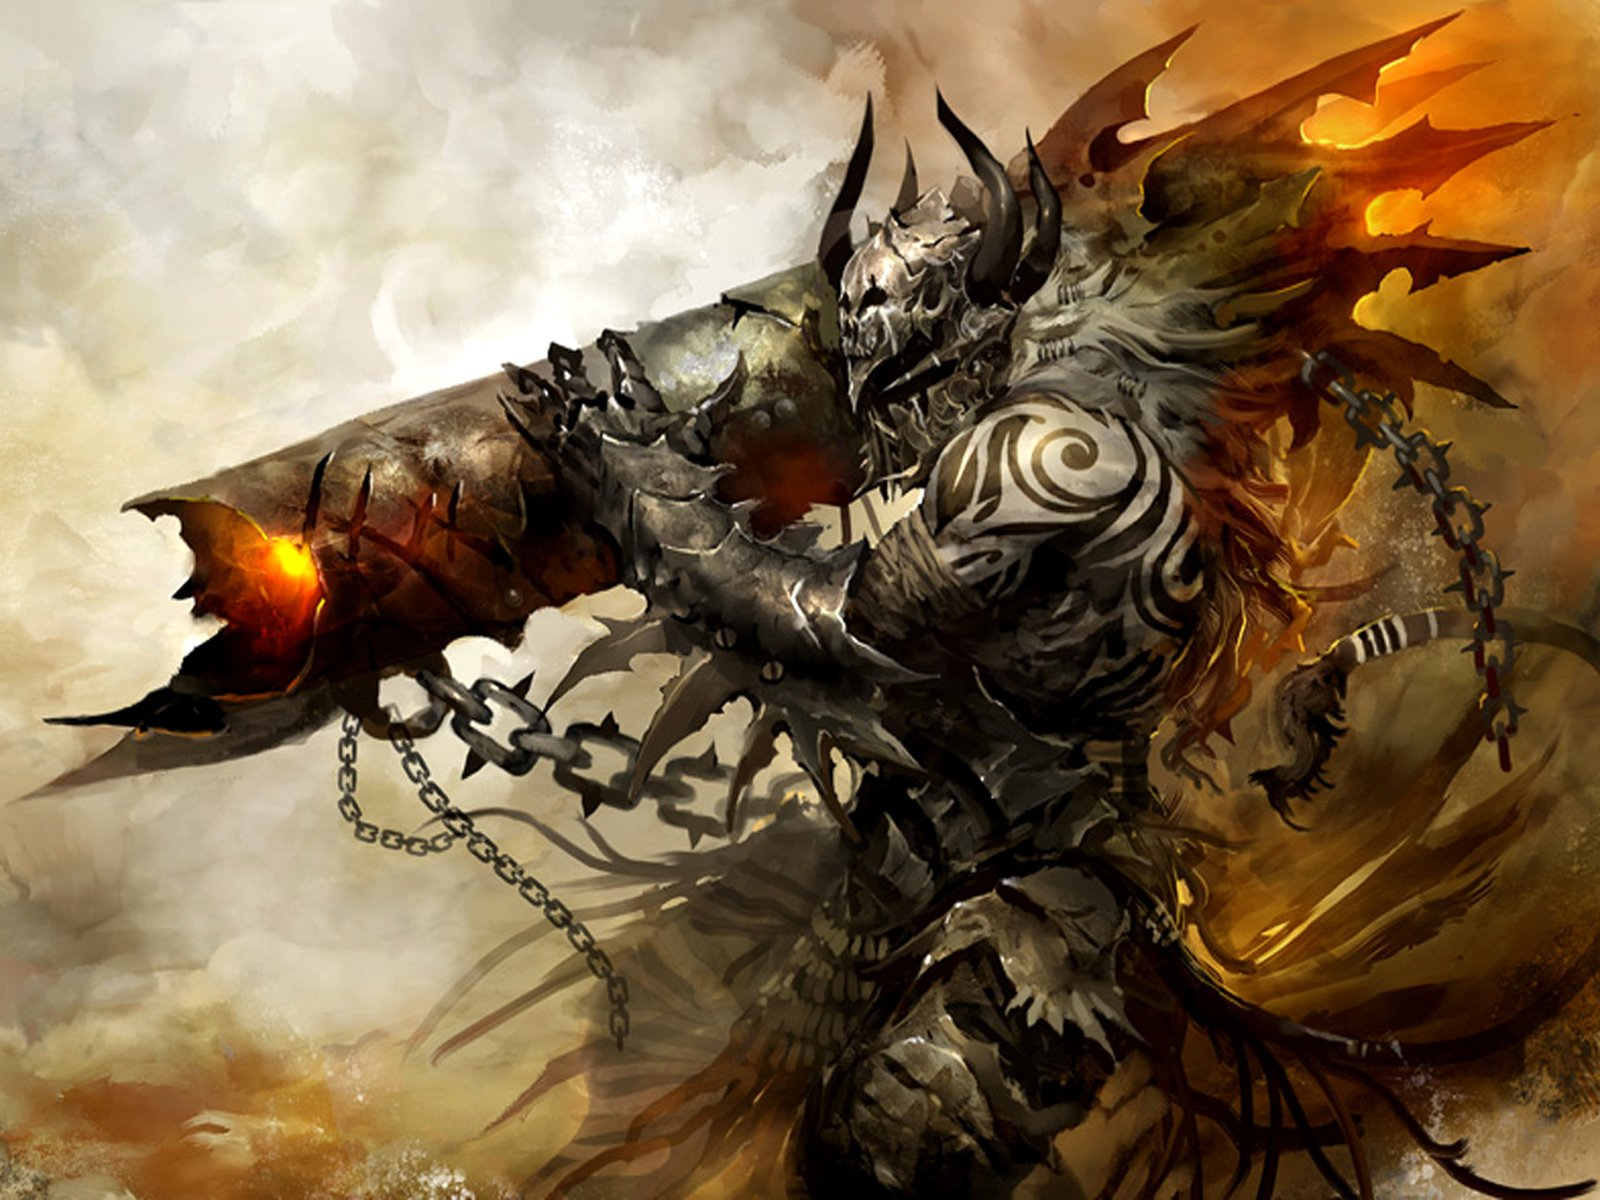 384 Guild Wars 2 Hd Wallpapers Background Images Wallpaper Abyss